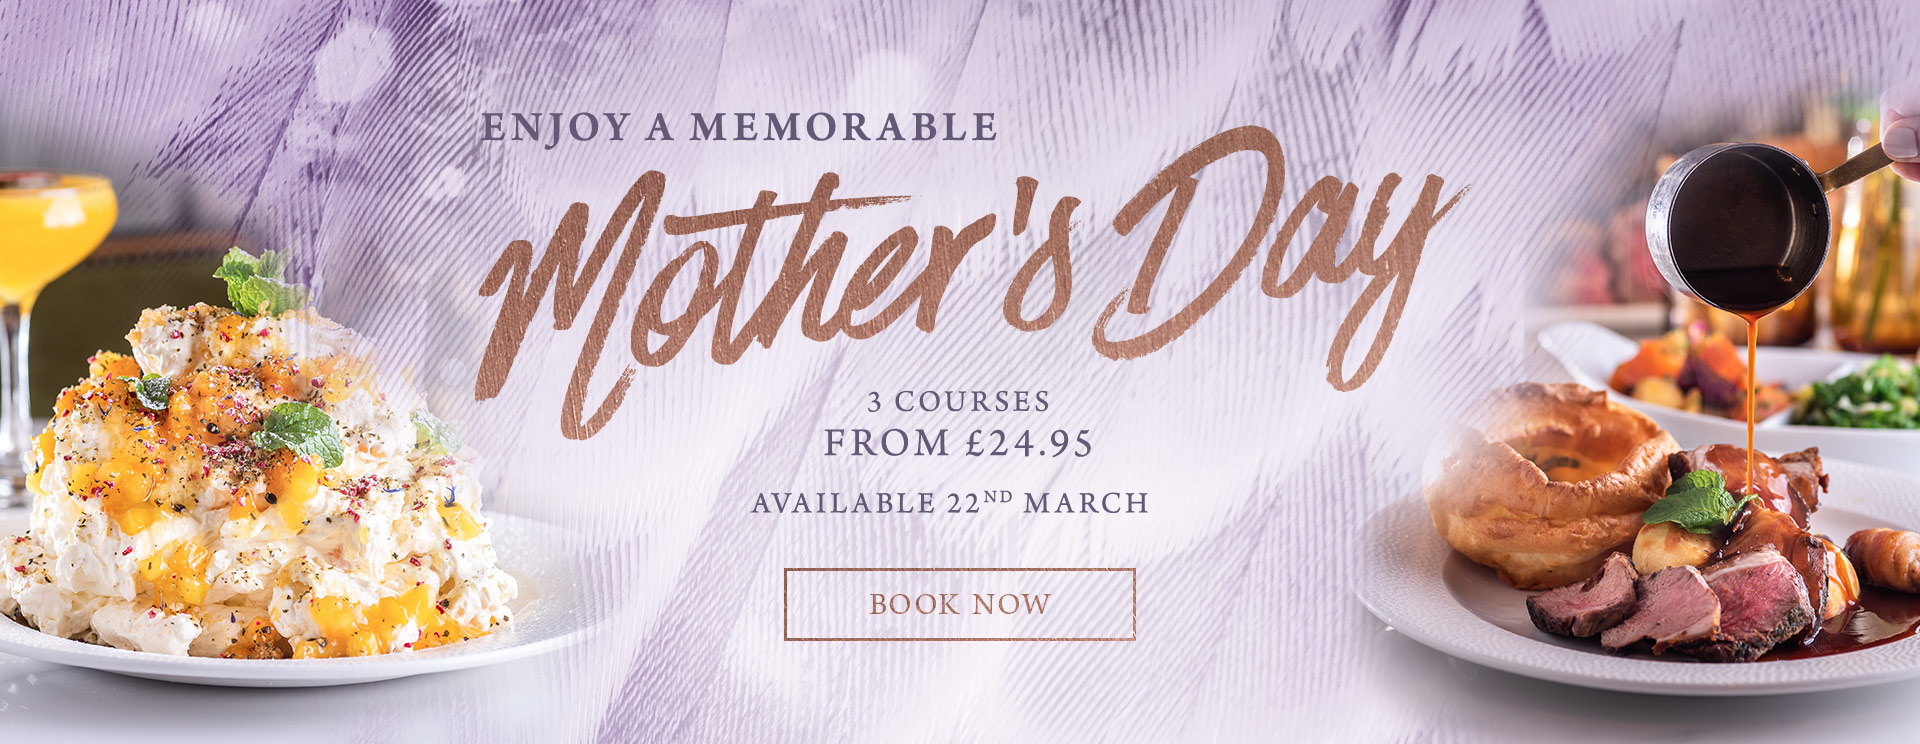 Mother's Day 2019 at The Oat Sheaf